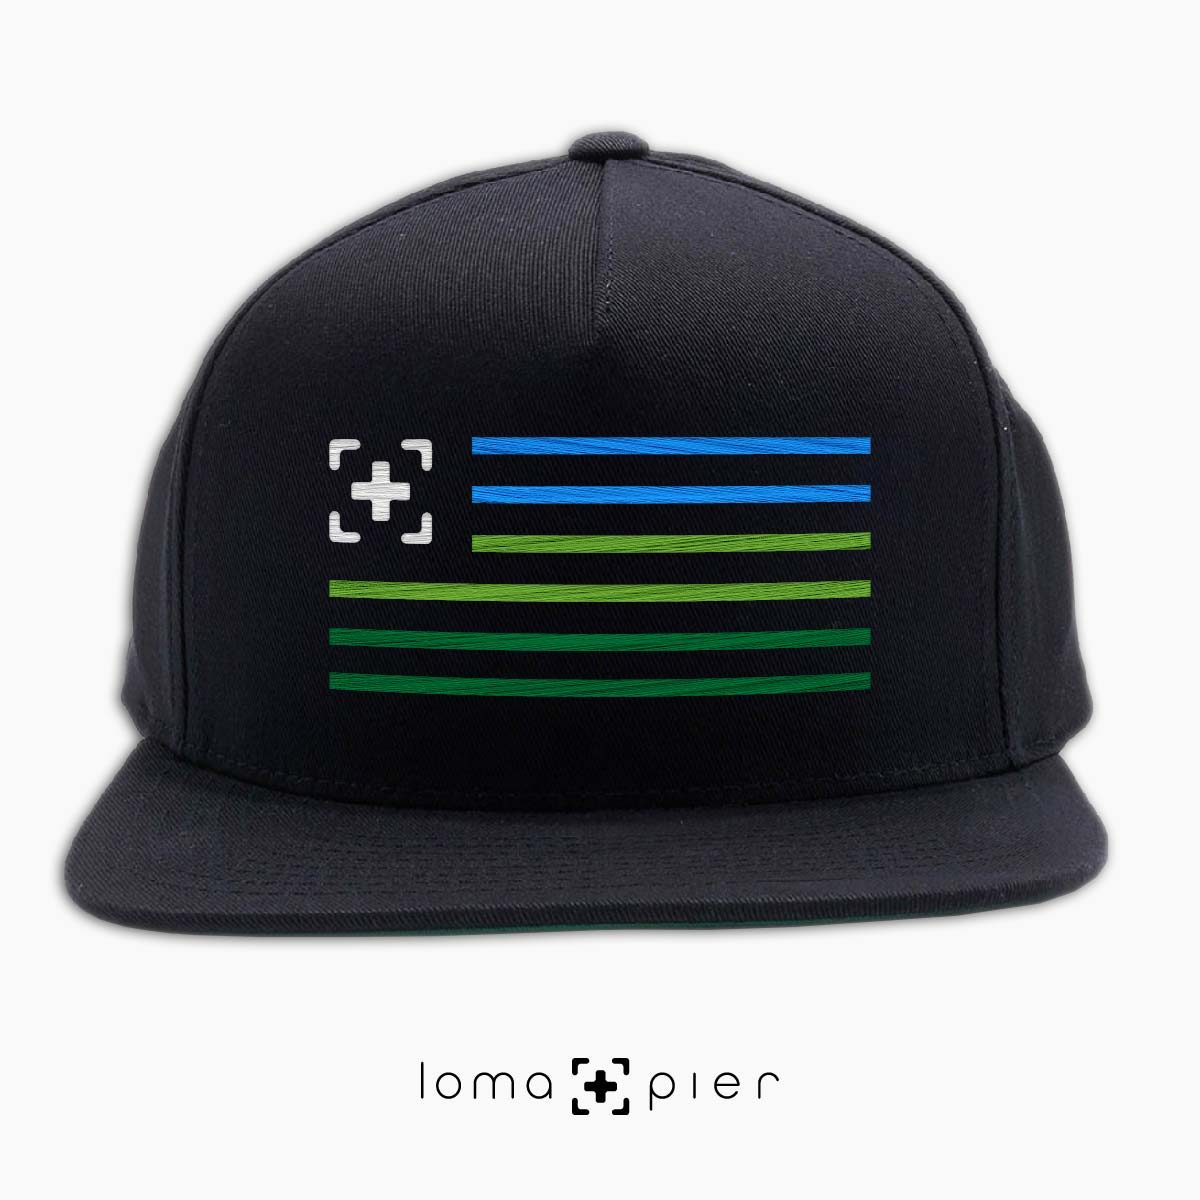 loma+stripes icon embroidered on a black classic snapback hat by loma+pier hat store